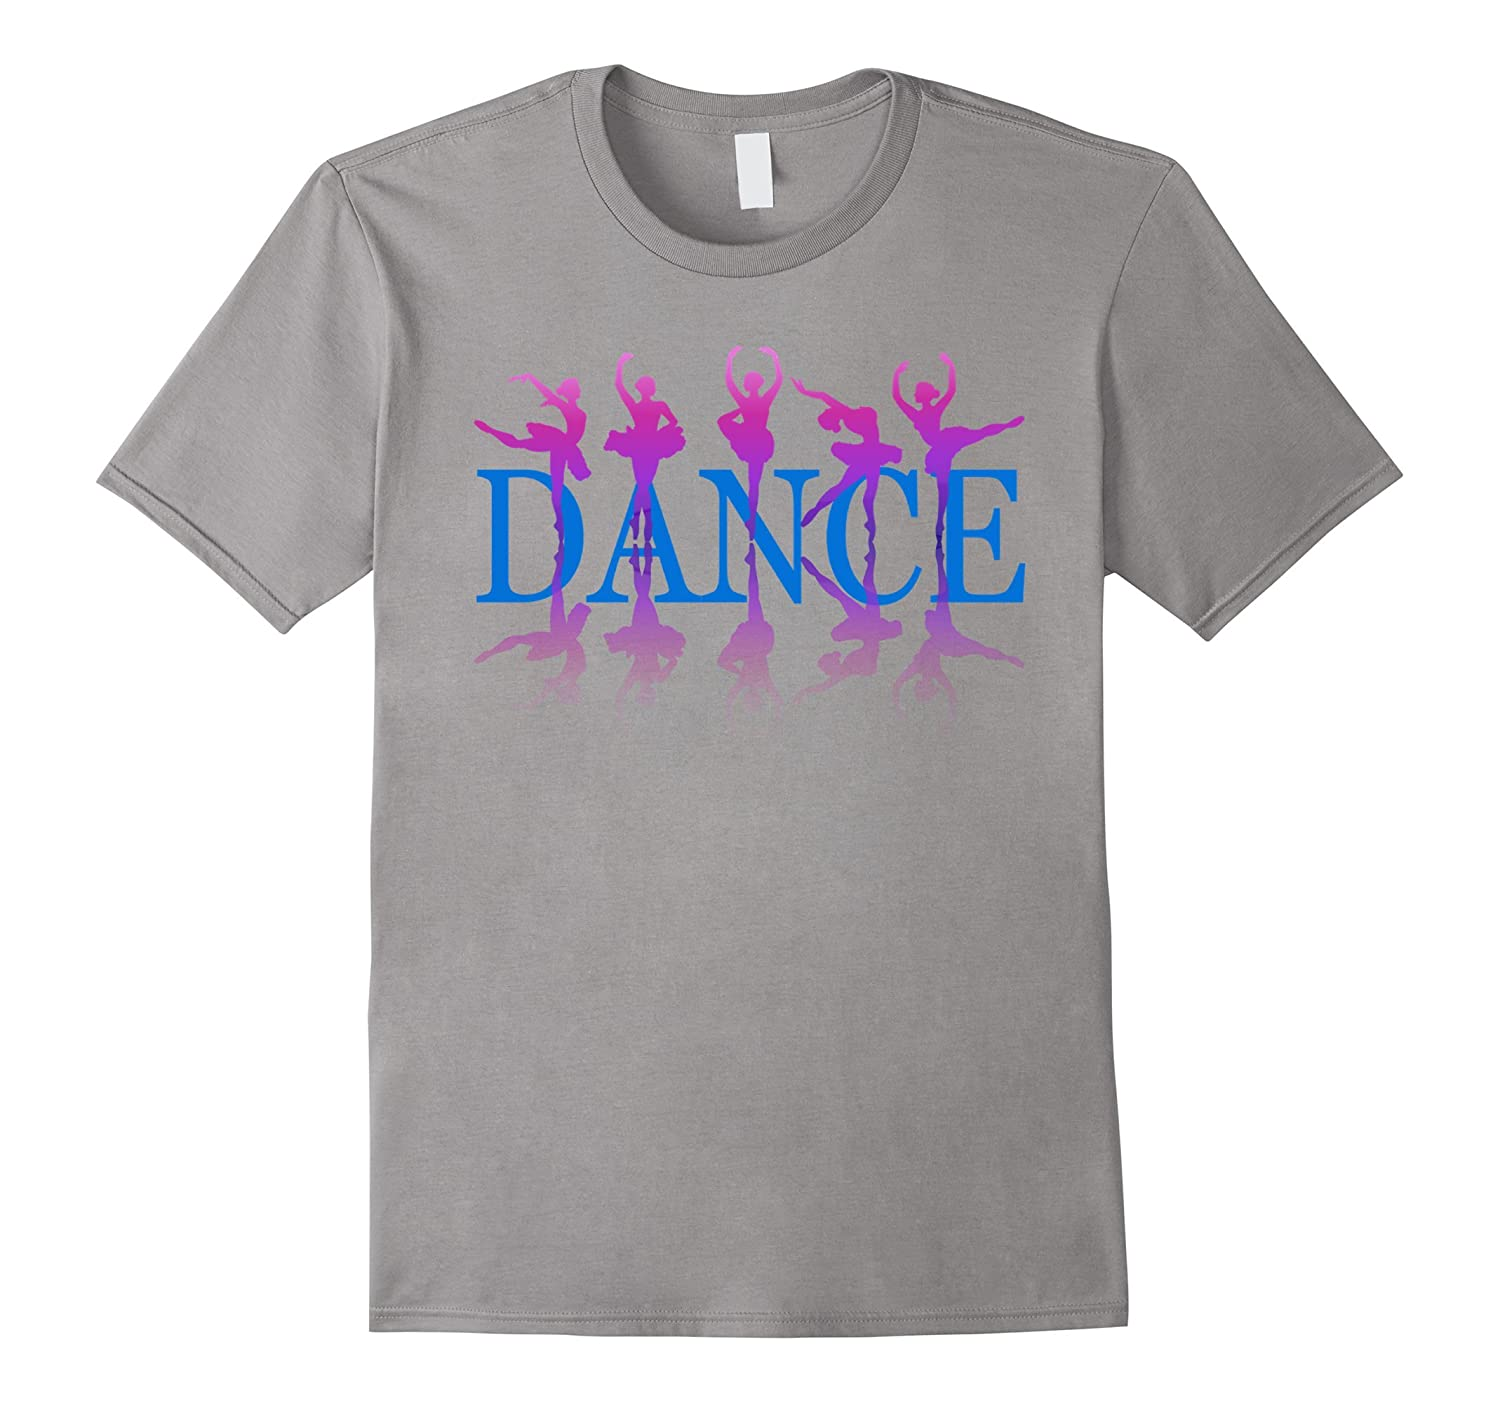 Ballet T shirt For Ballet Dancer-Vaci